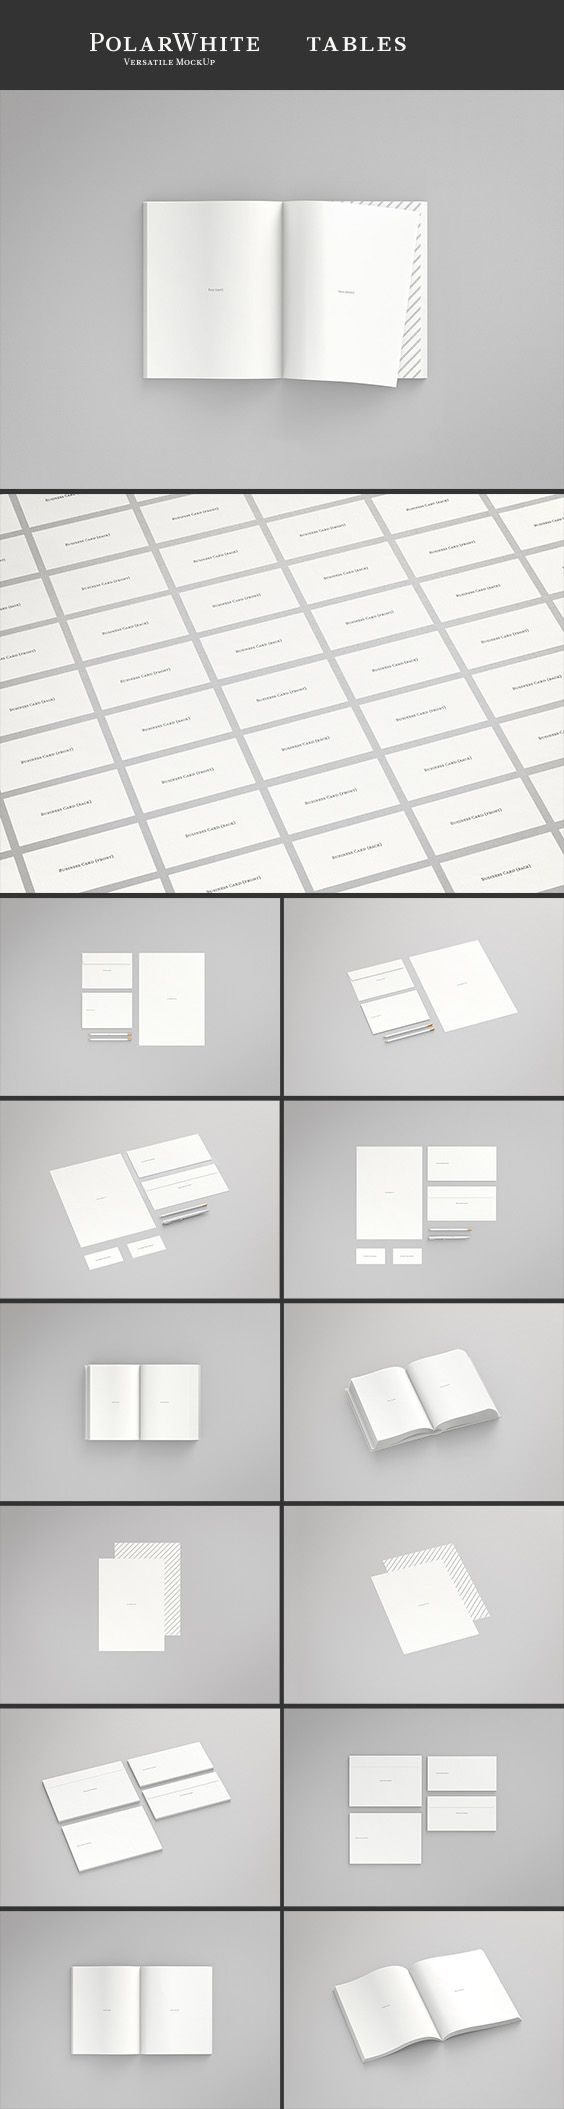 PolarWhite Tables by JHåland is a MockUp collection for Photoshop CS6+  The package contains two C5, DL envelope & A4 paper, two A4, Business card, DL envelope, pen & pensil, two Open book, two A4 paper, two C5, DL envelope, three Open Magazine and a Business card layout.  There's also wireframes for every scene for precision work.